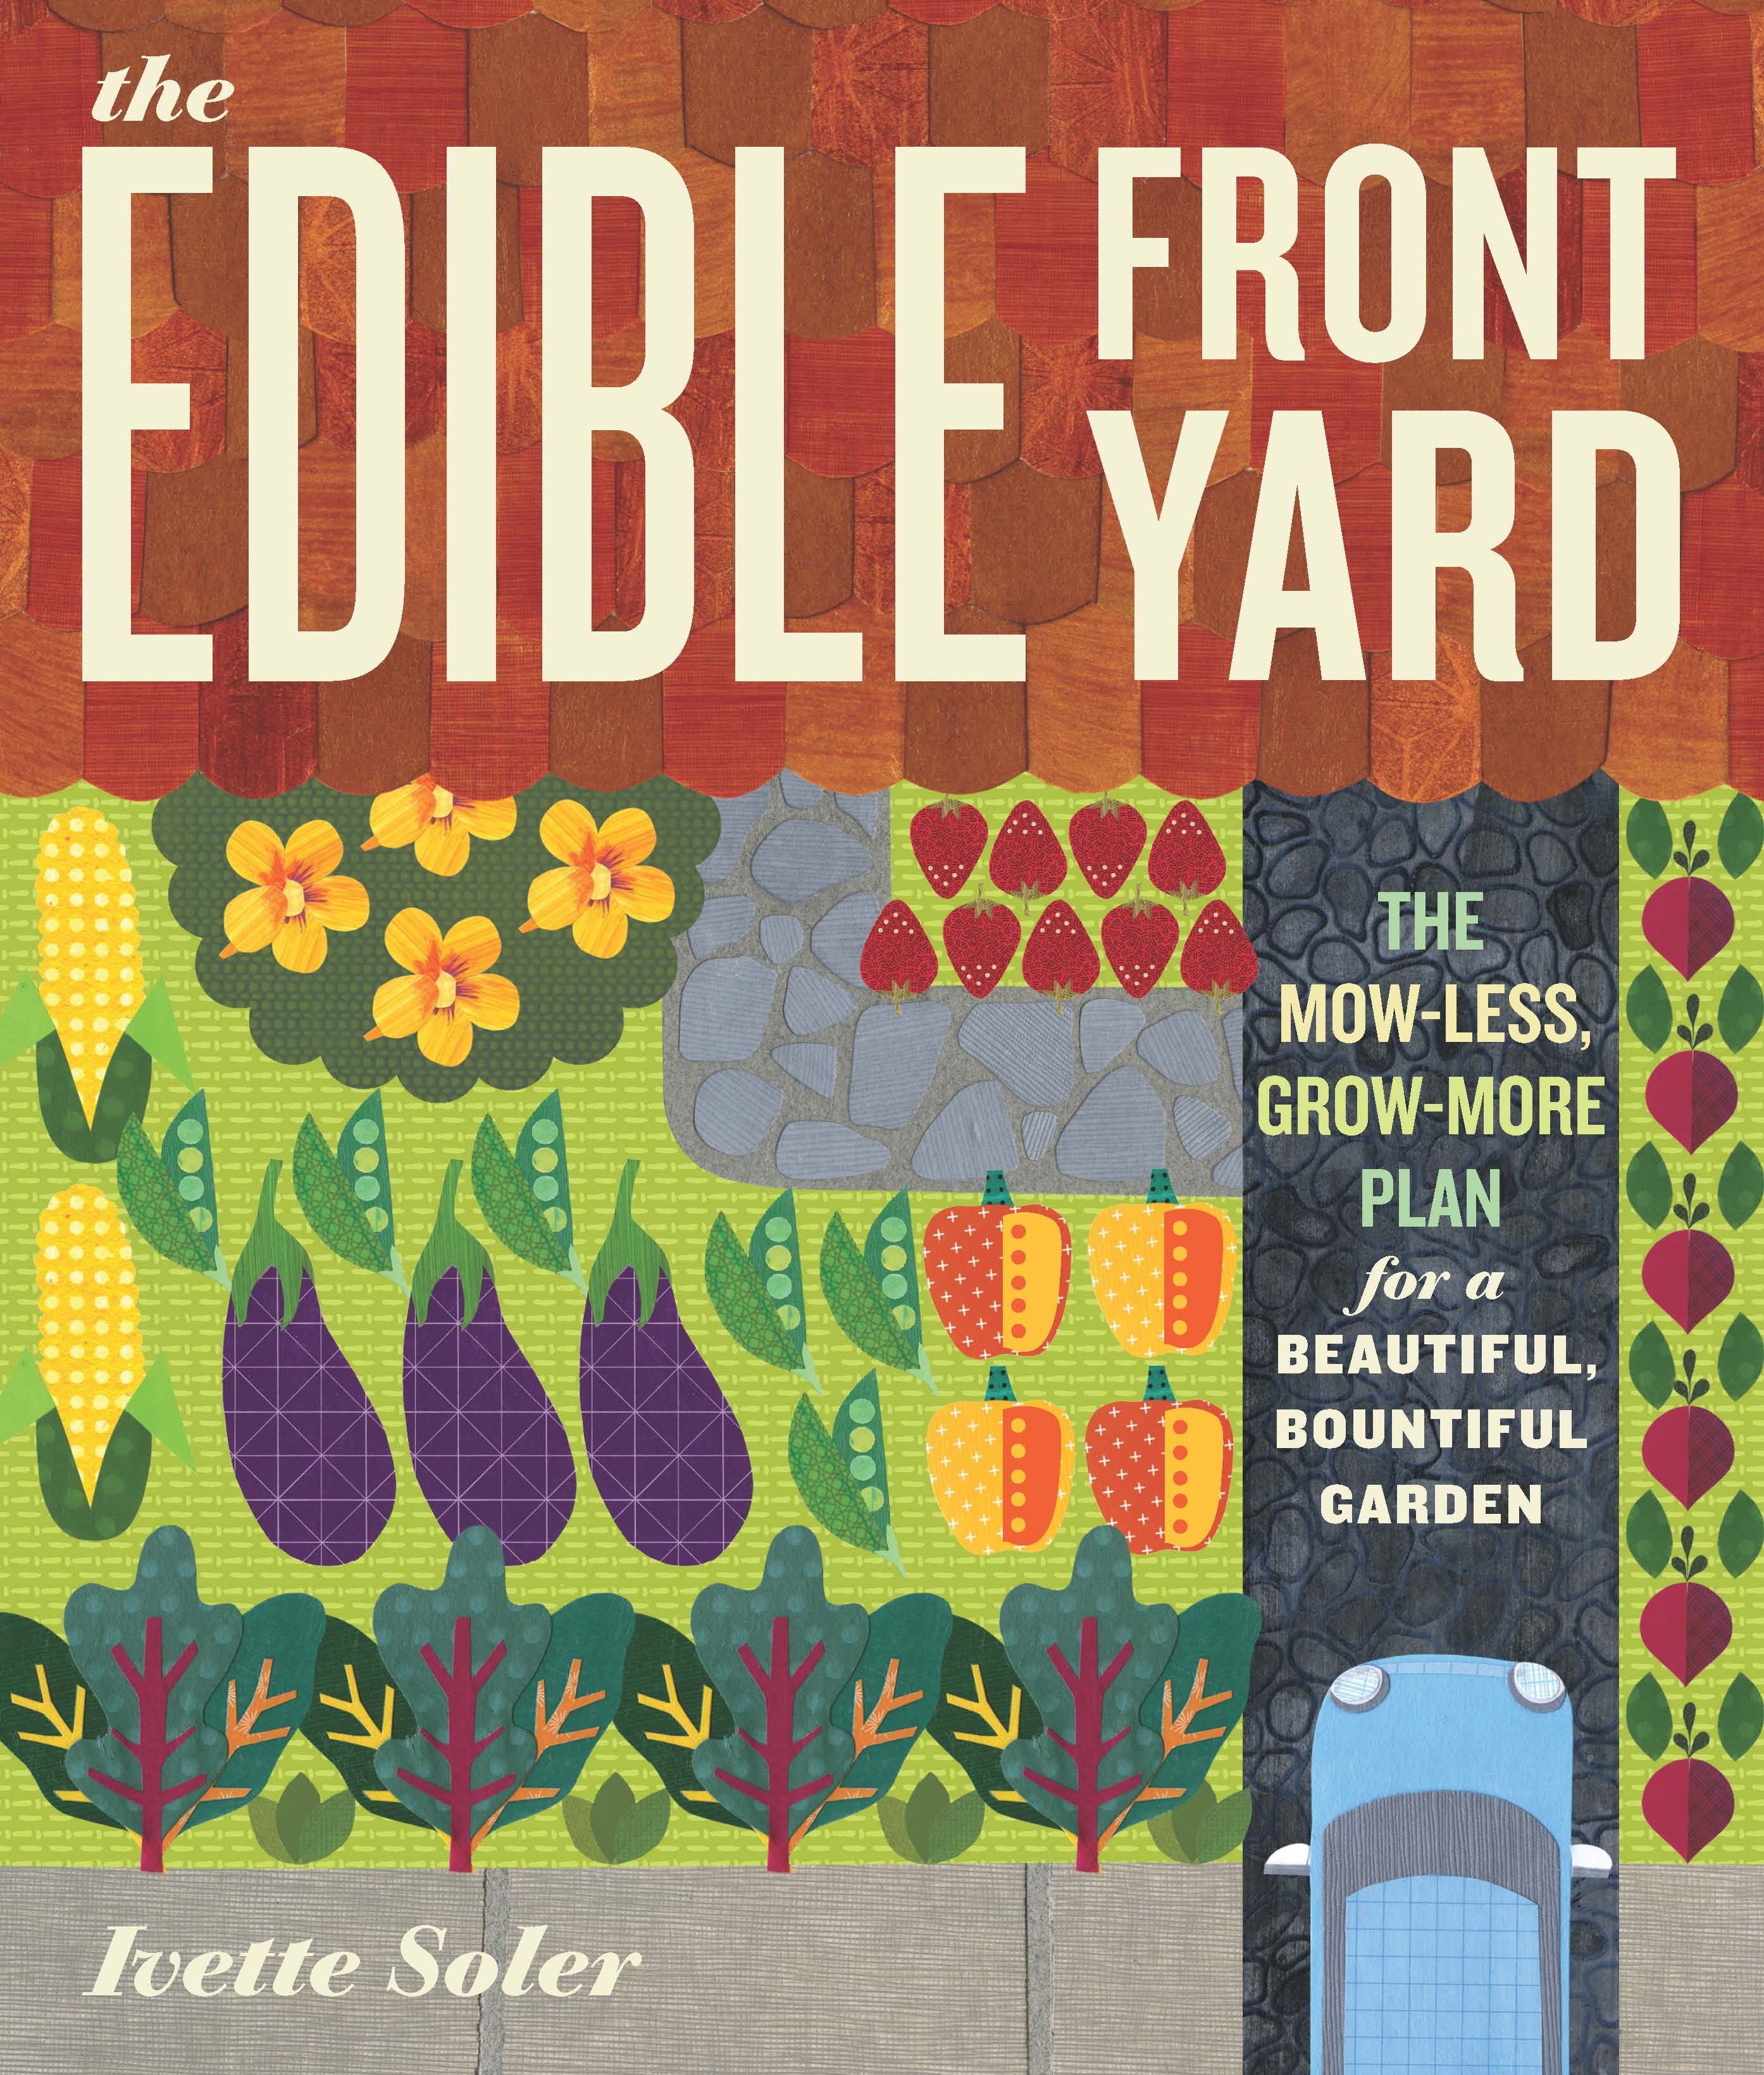 The edible front yard the mow-less, grow-more plan for a beautiful, bountiful garden